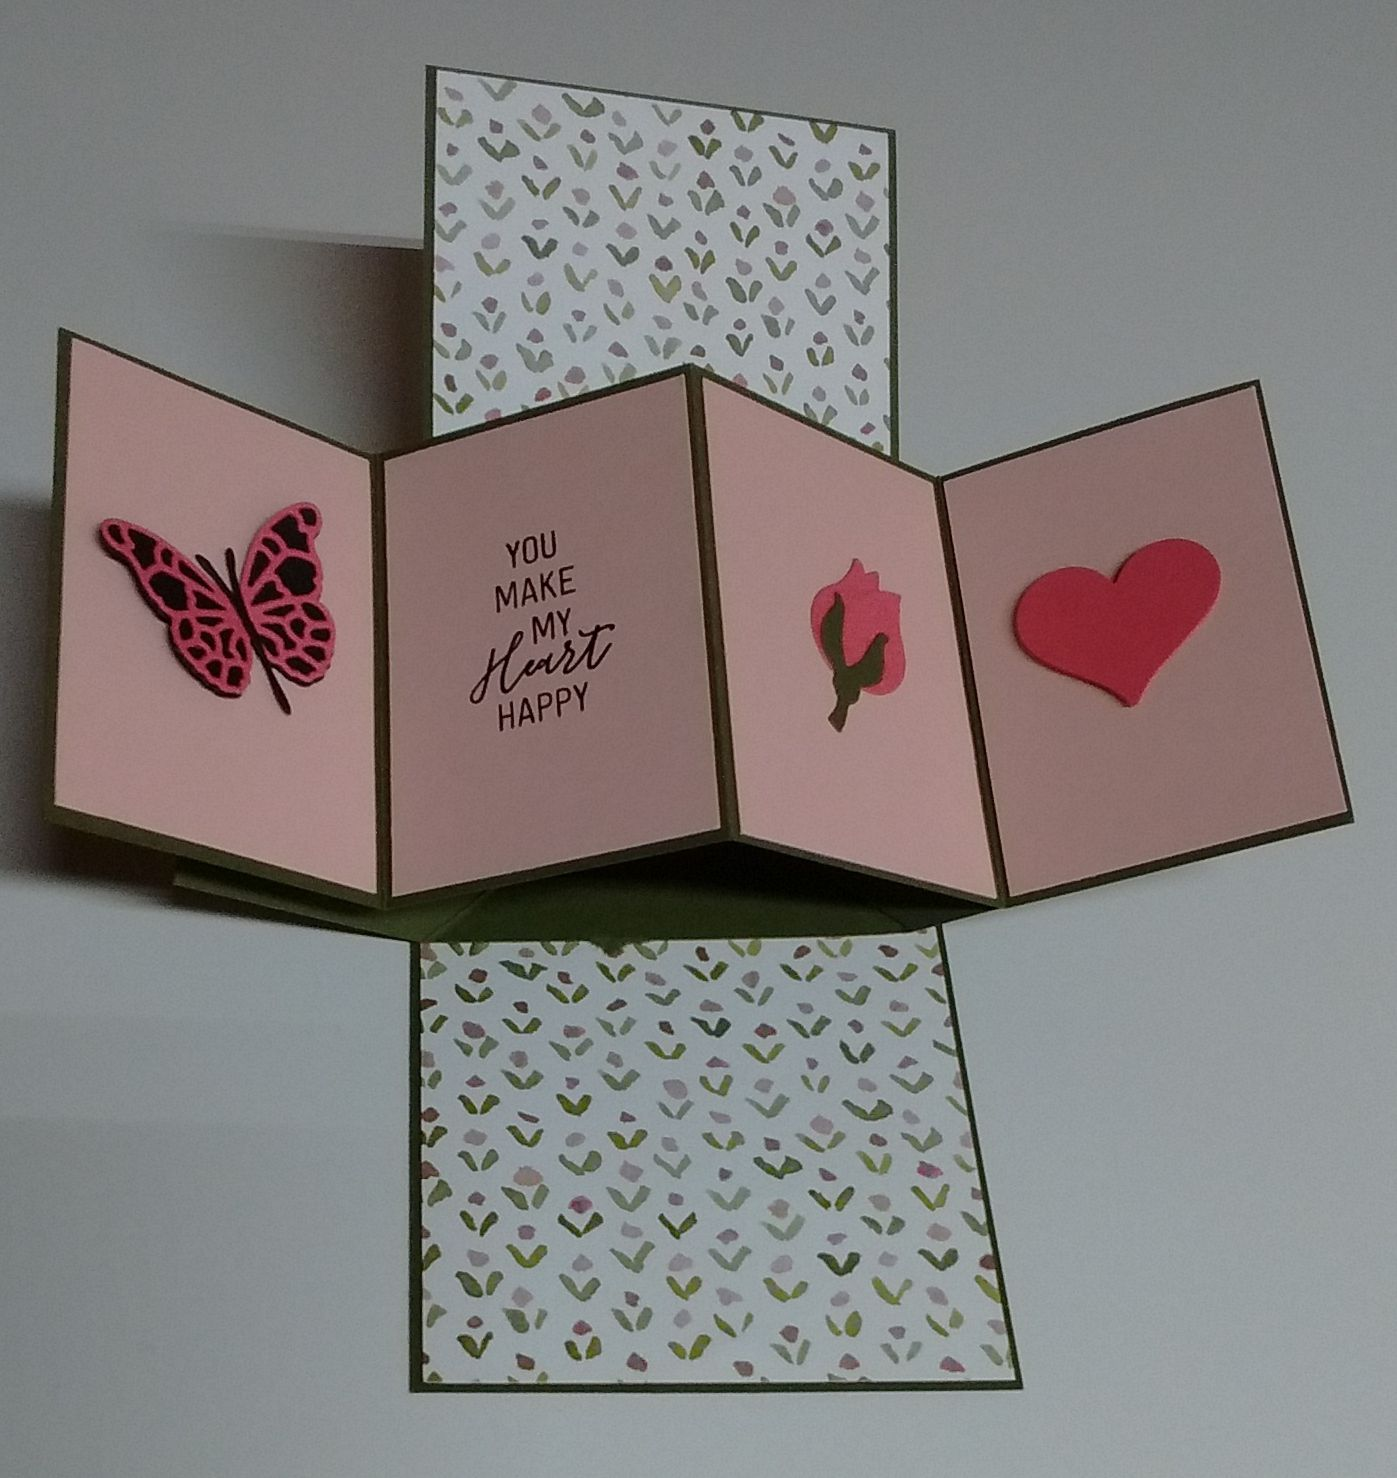 The Wonderful Twisting Pop Up Card Template In Twisting Hearts Pop Up Card Template Pics Below Is Part Of Twi Pop Up Card Templates Pop Up Cards Card Template